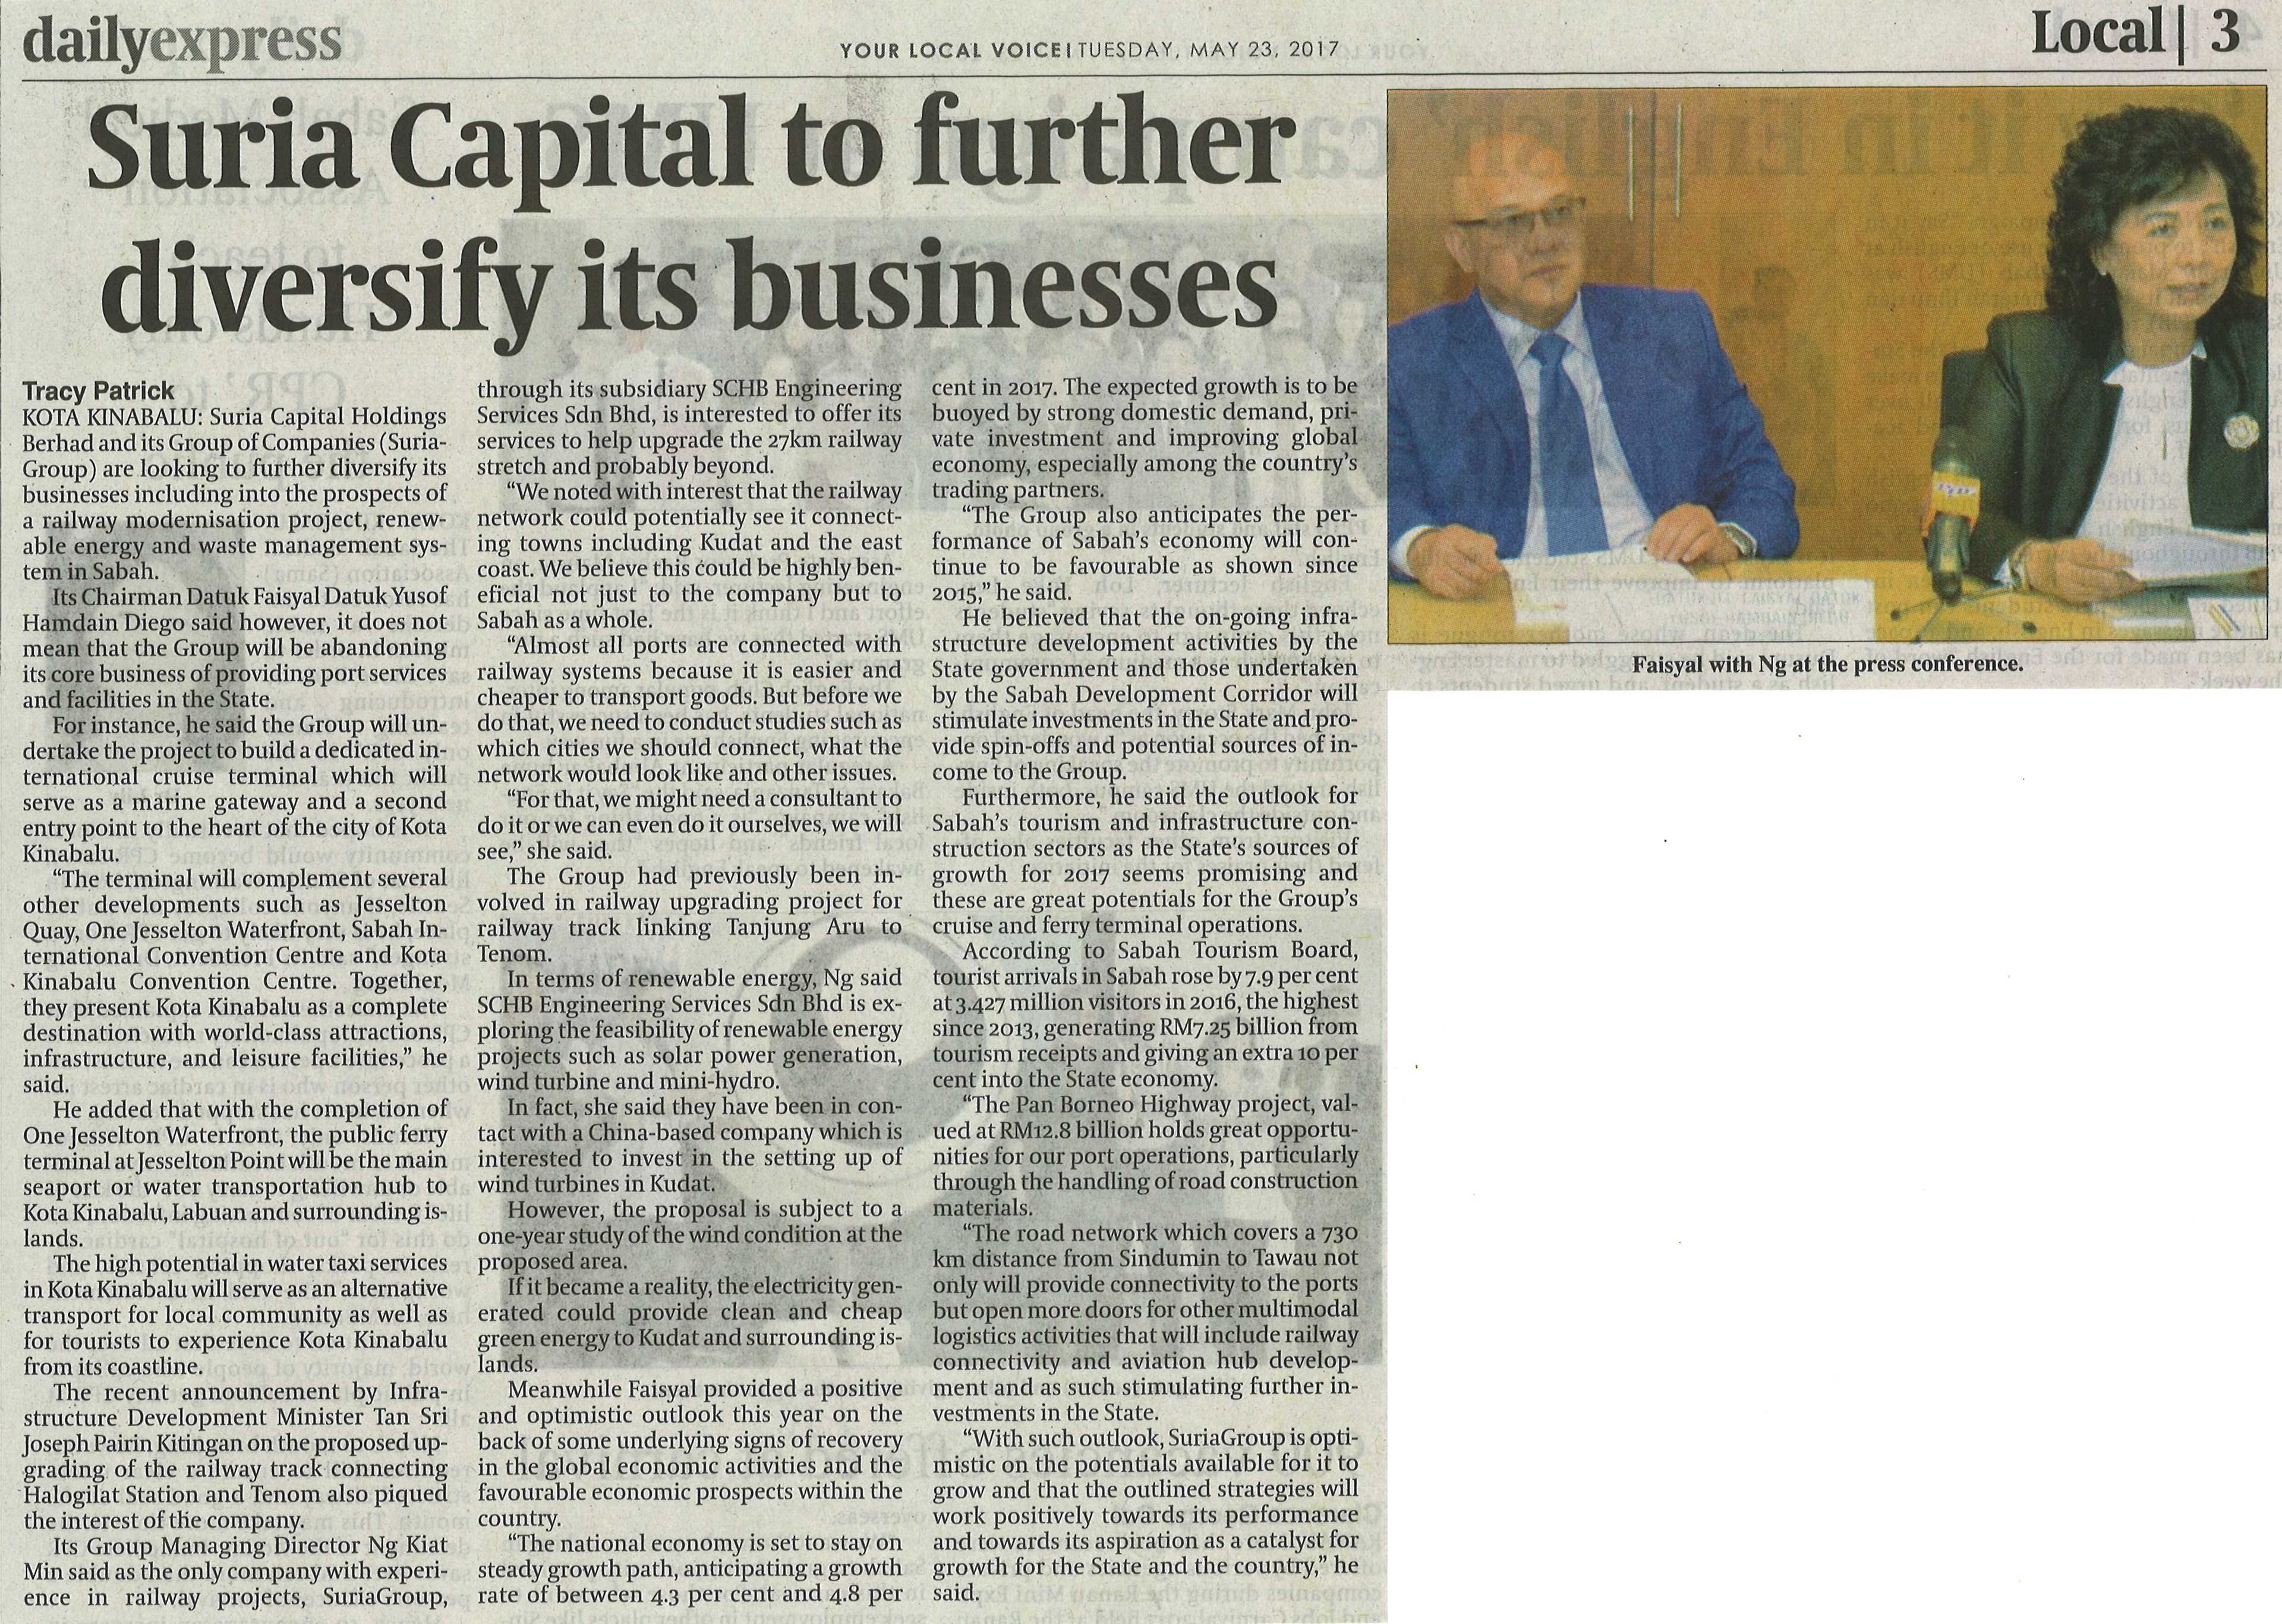 Suria Capital to Further Diversify its Businesses